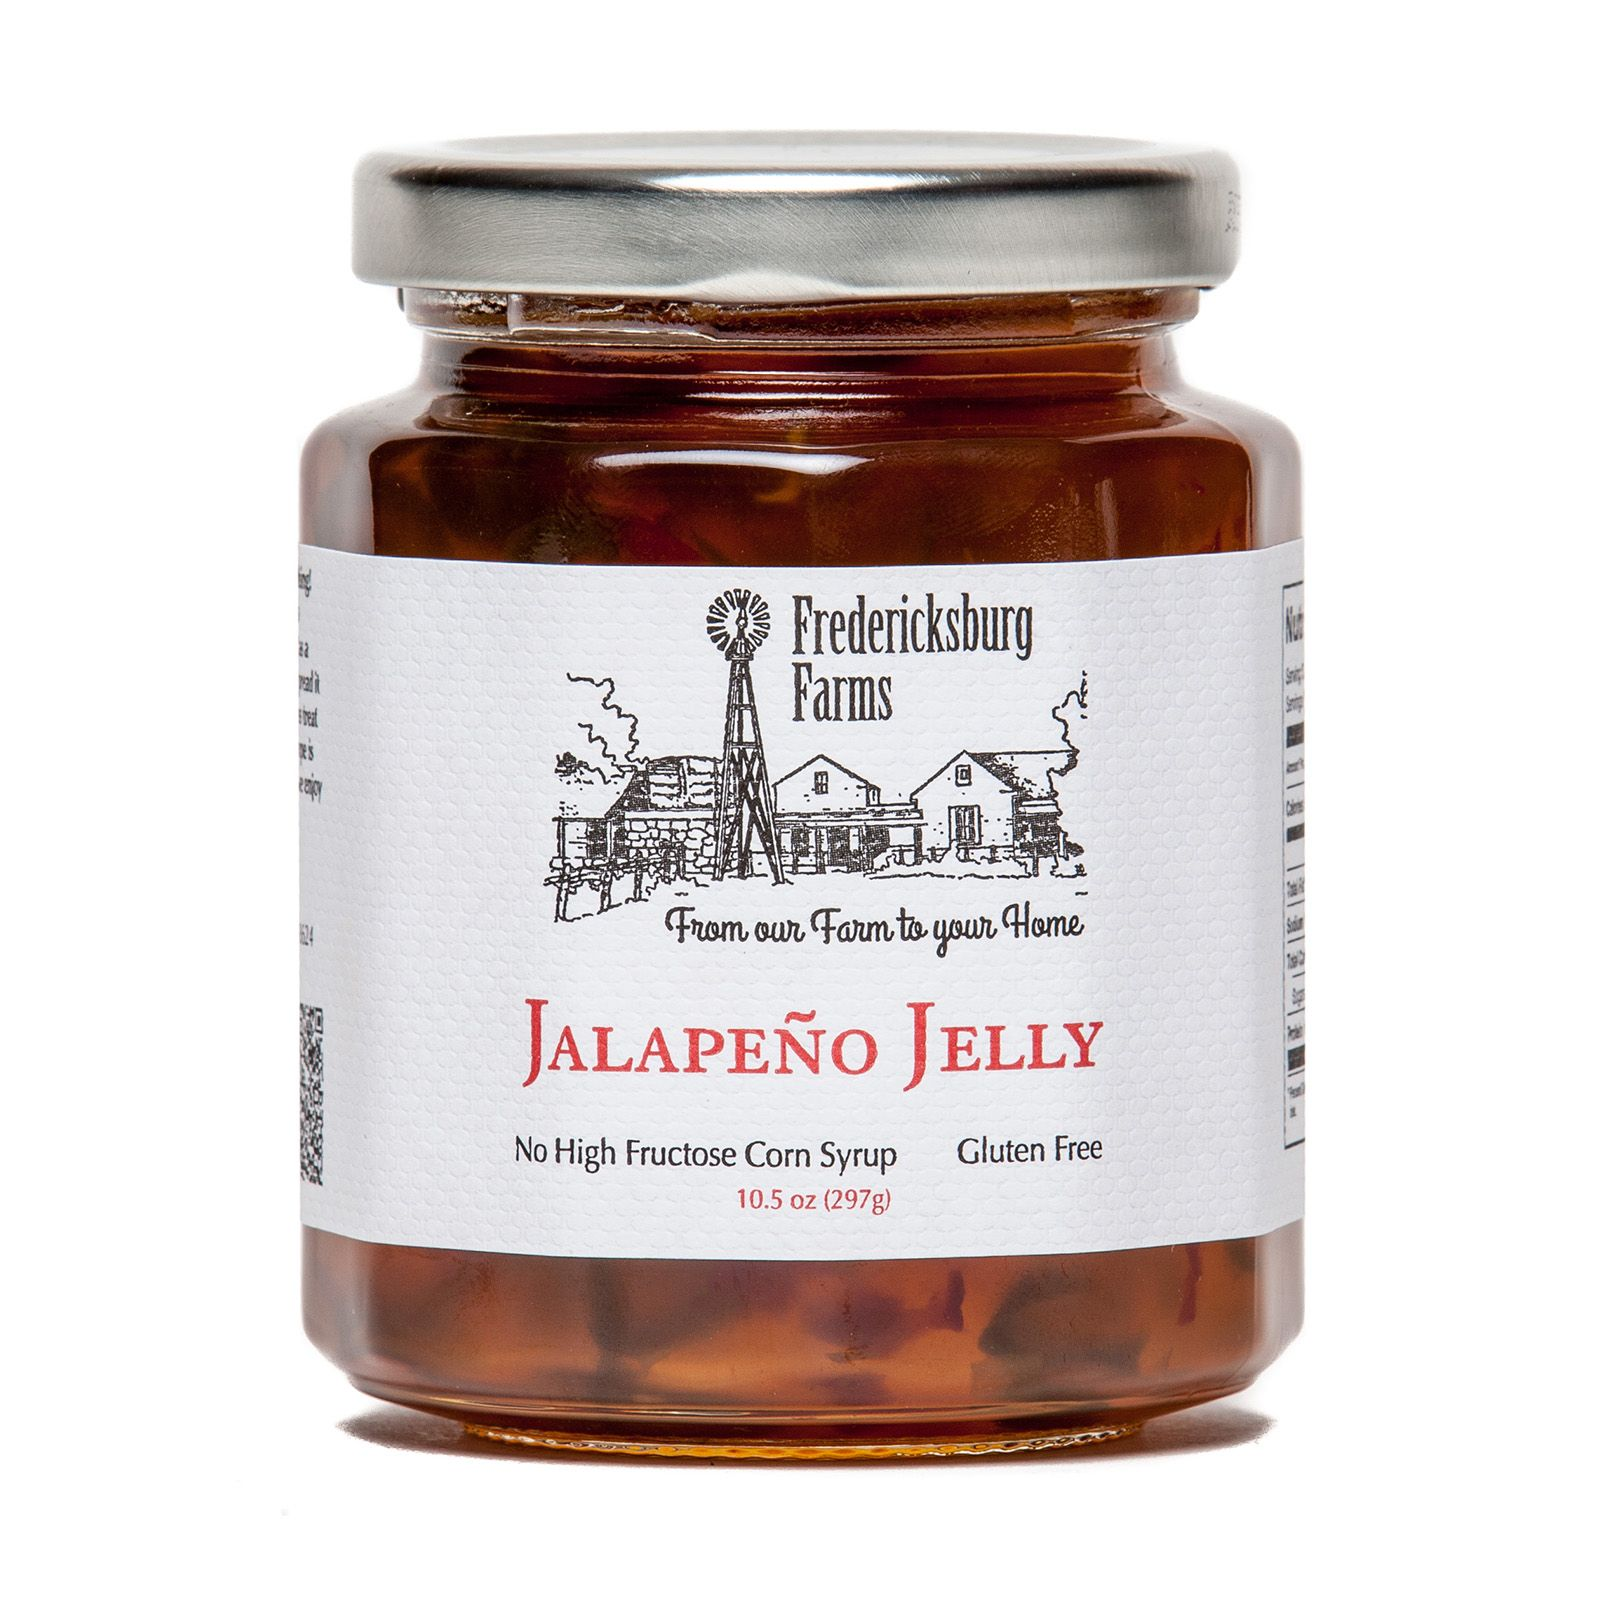 Fredericksburg Farms Jalapeno Jelly